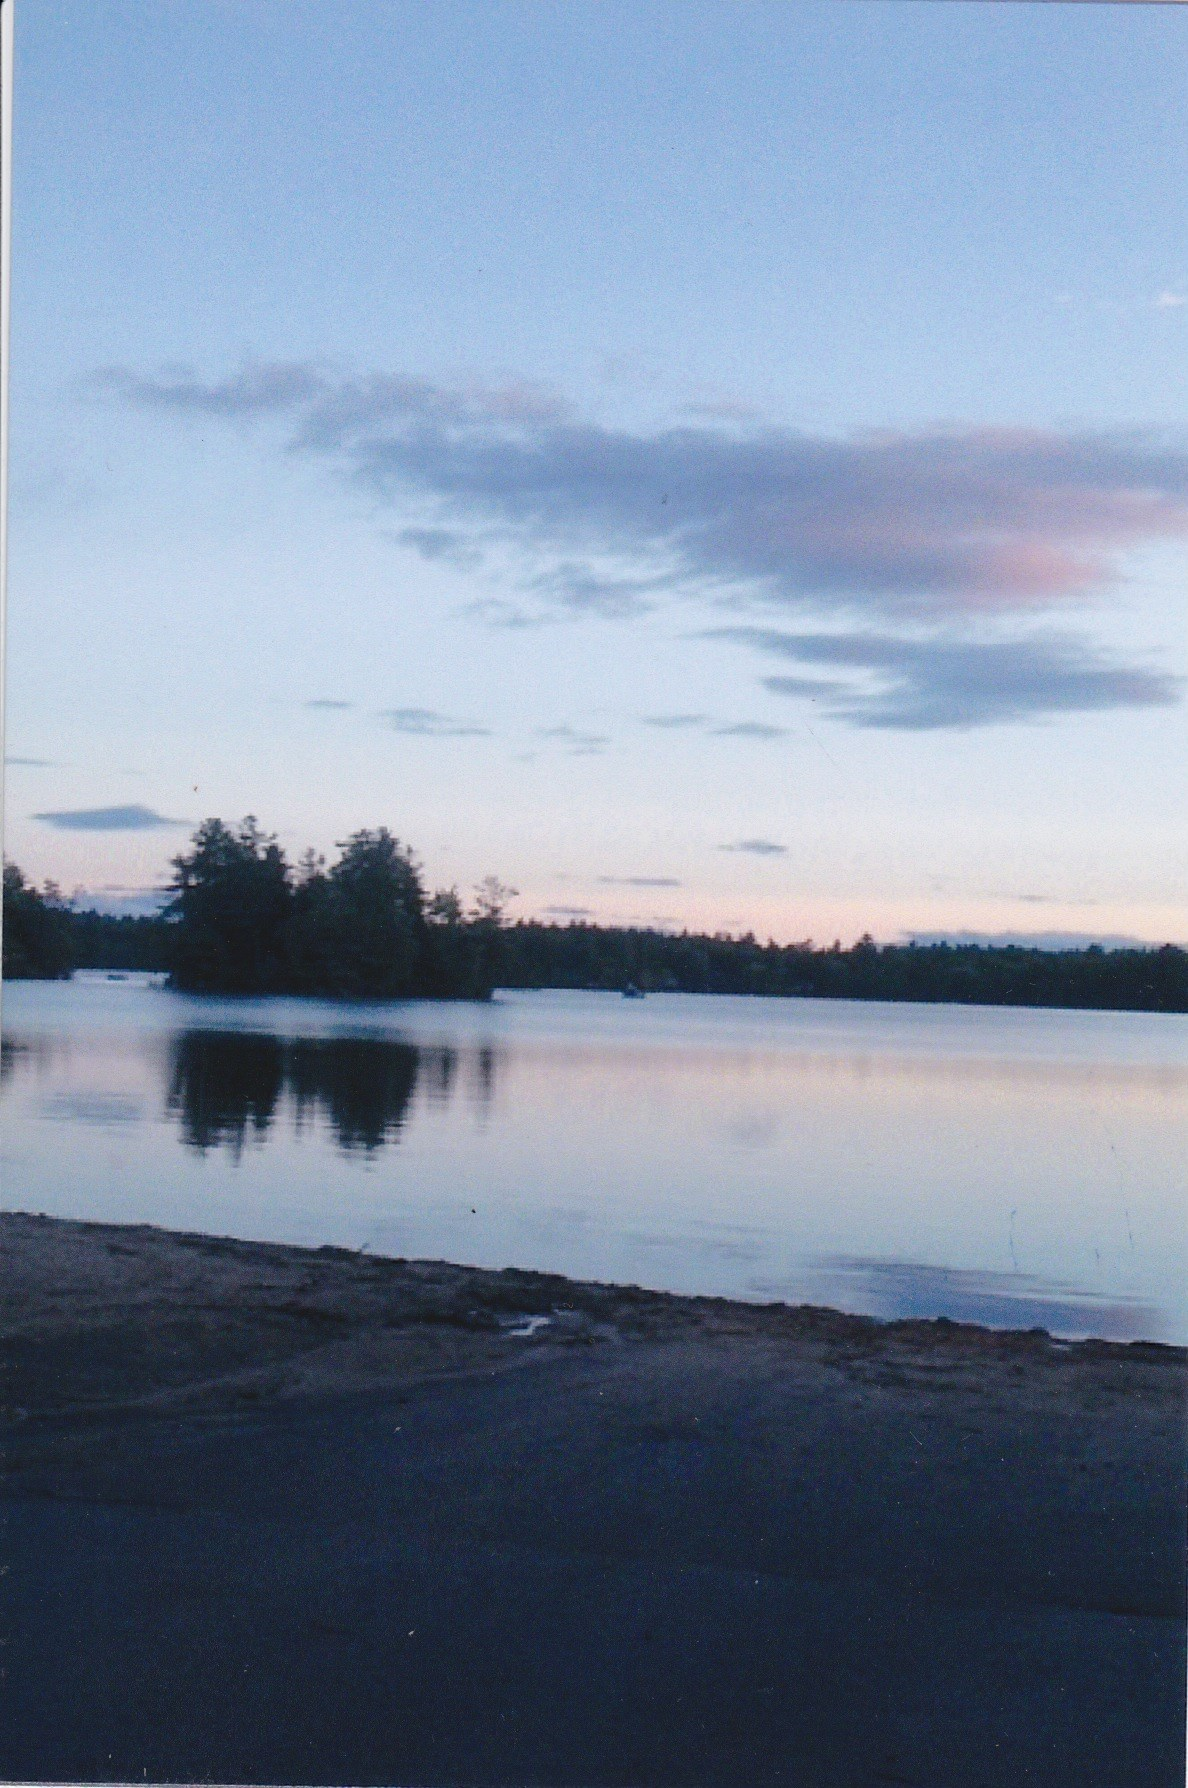 JAGGH - Spring Island in the evening - June, 201